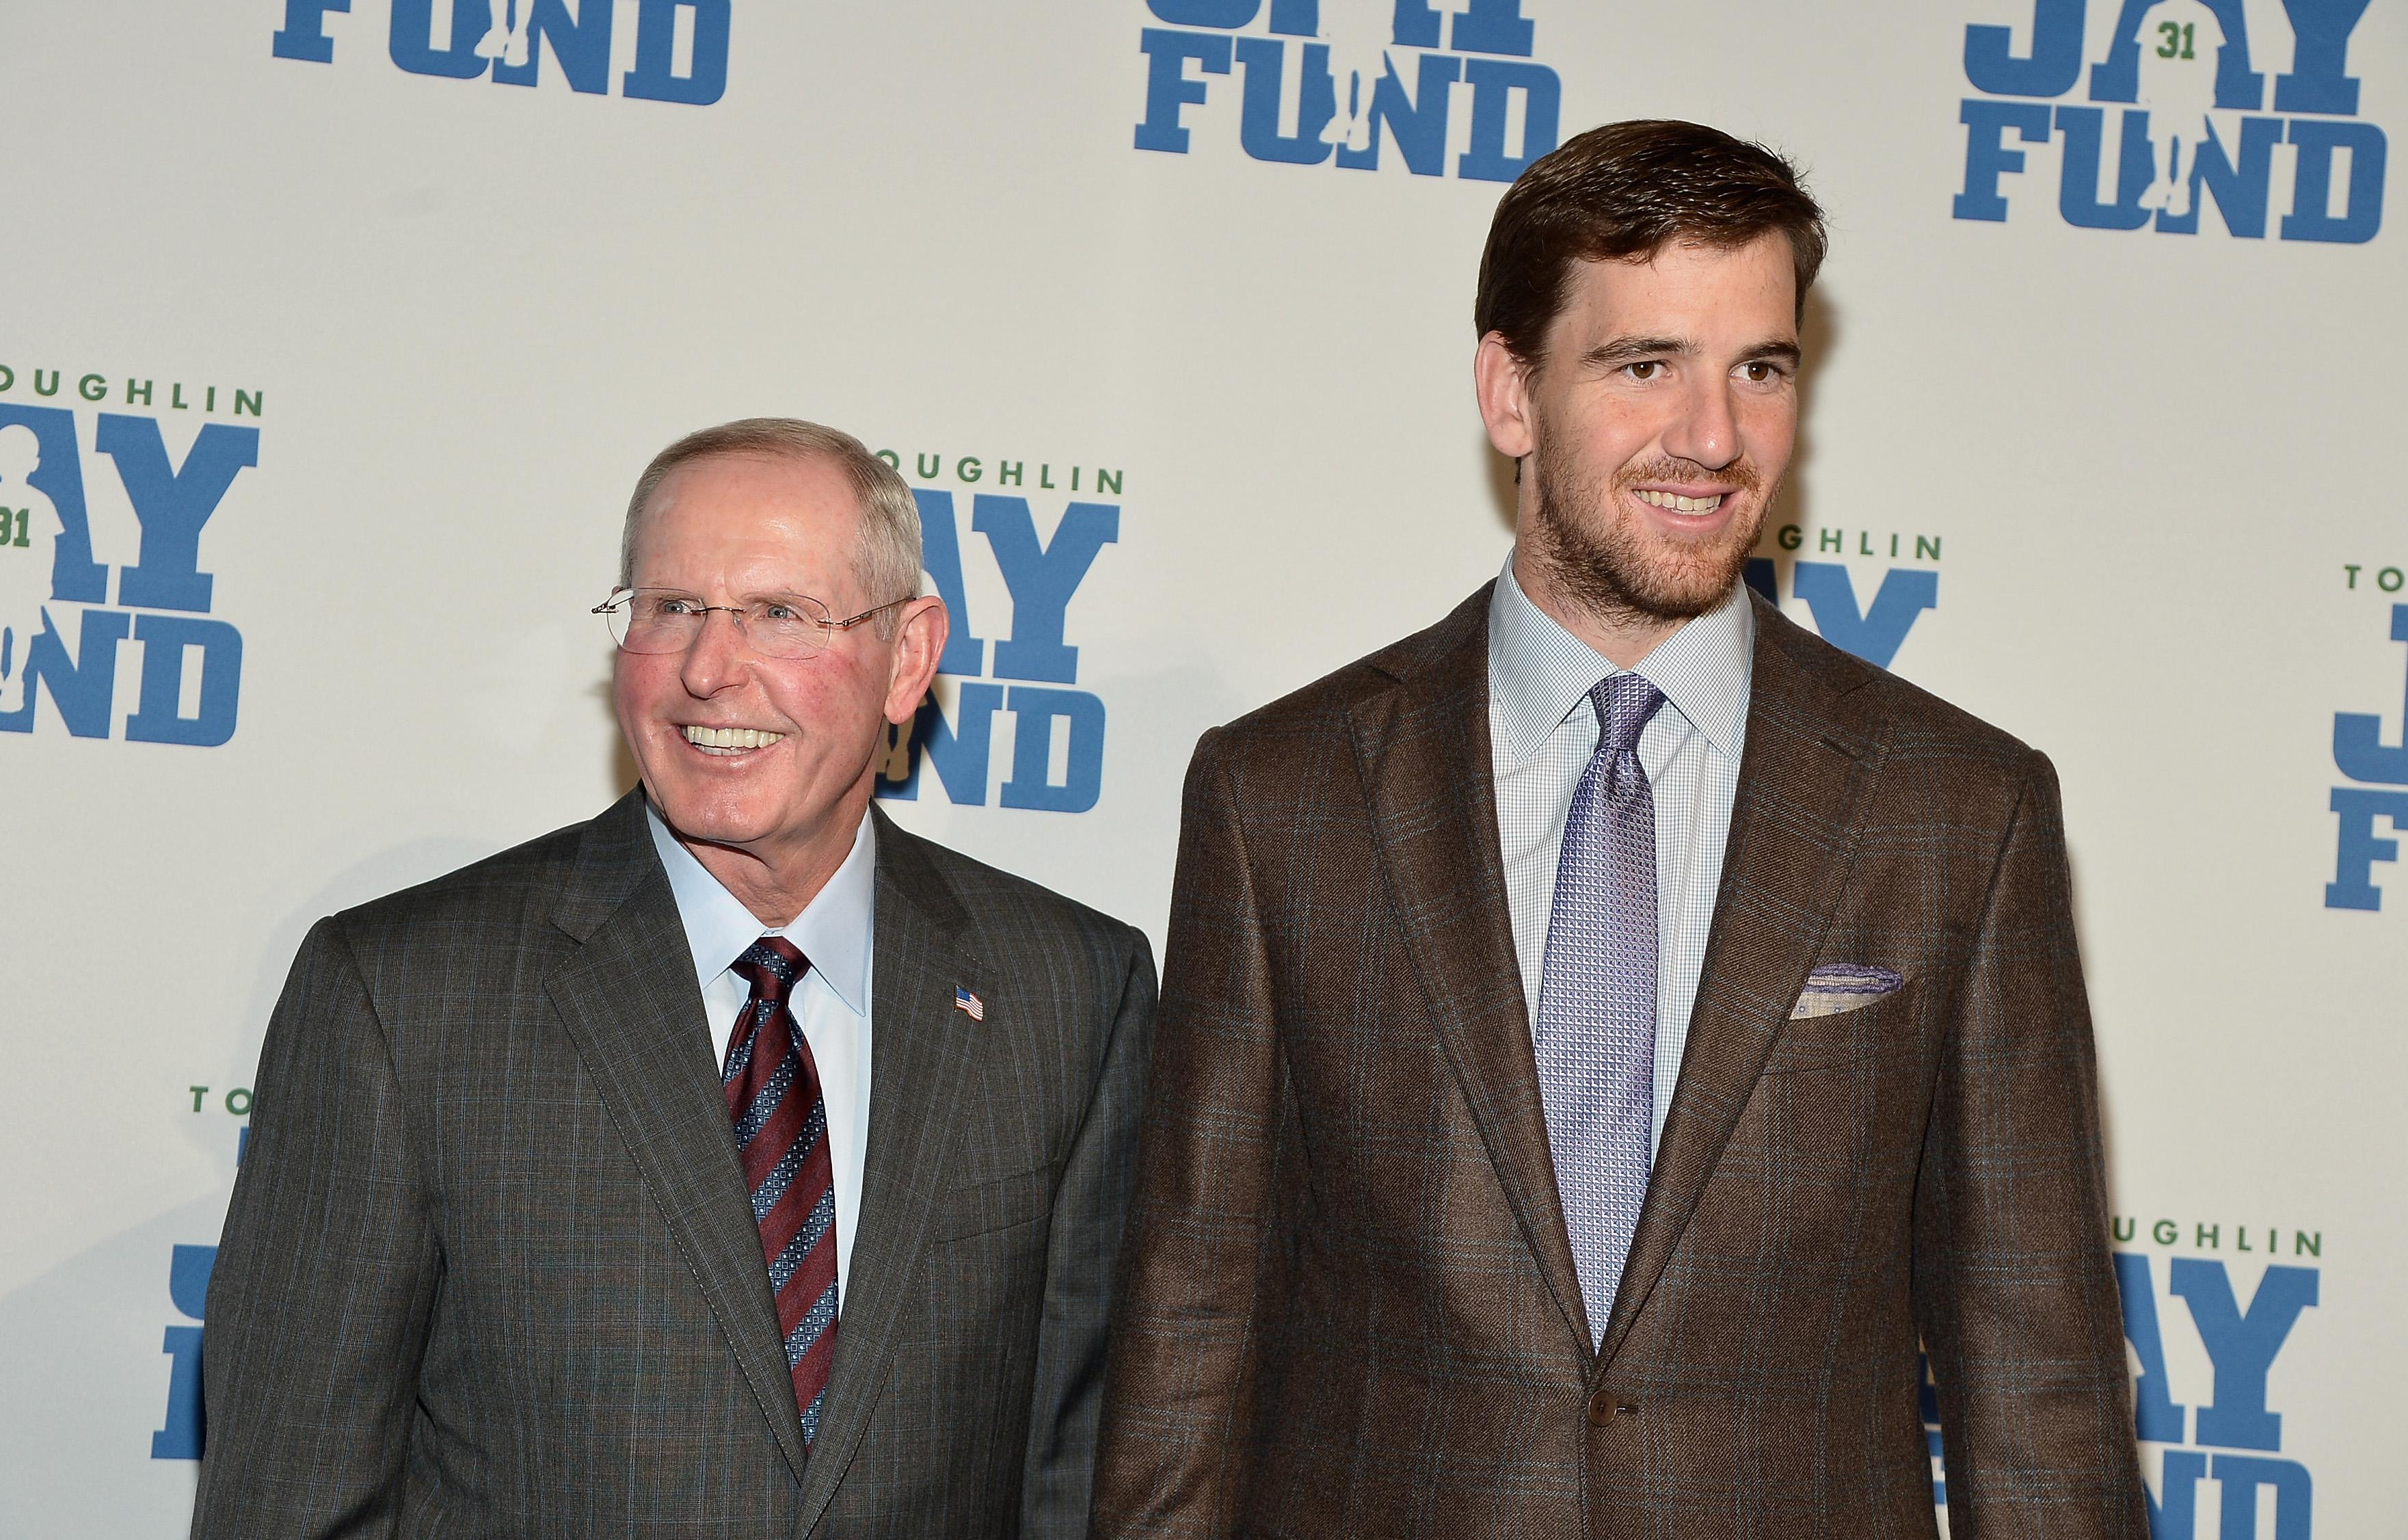 Tom Coughlin Jay Fund Foundation will hold dynamic, interactive Champions for Children Gala on October 2